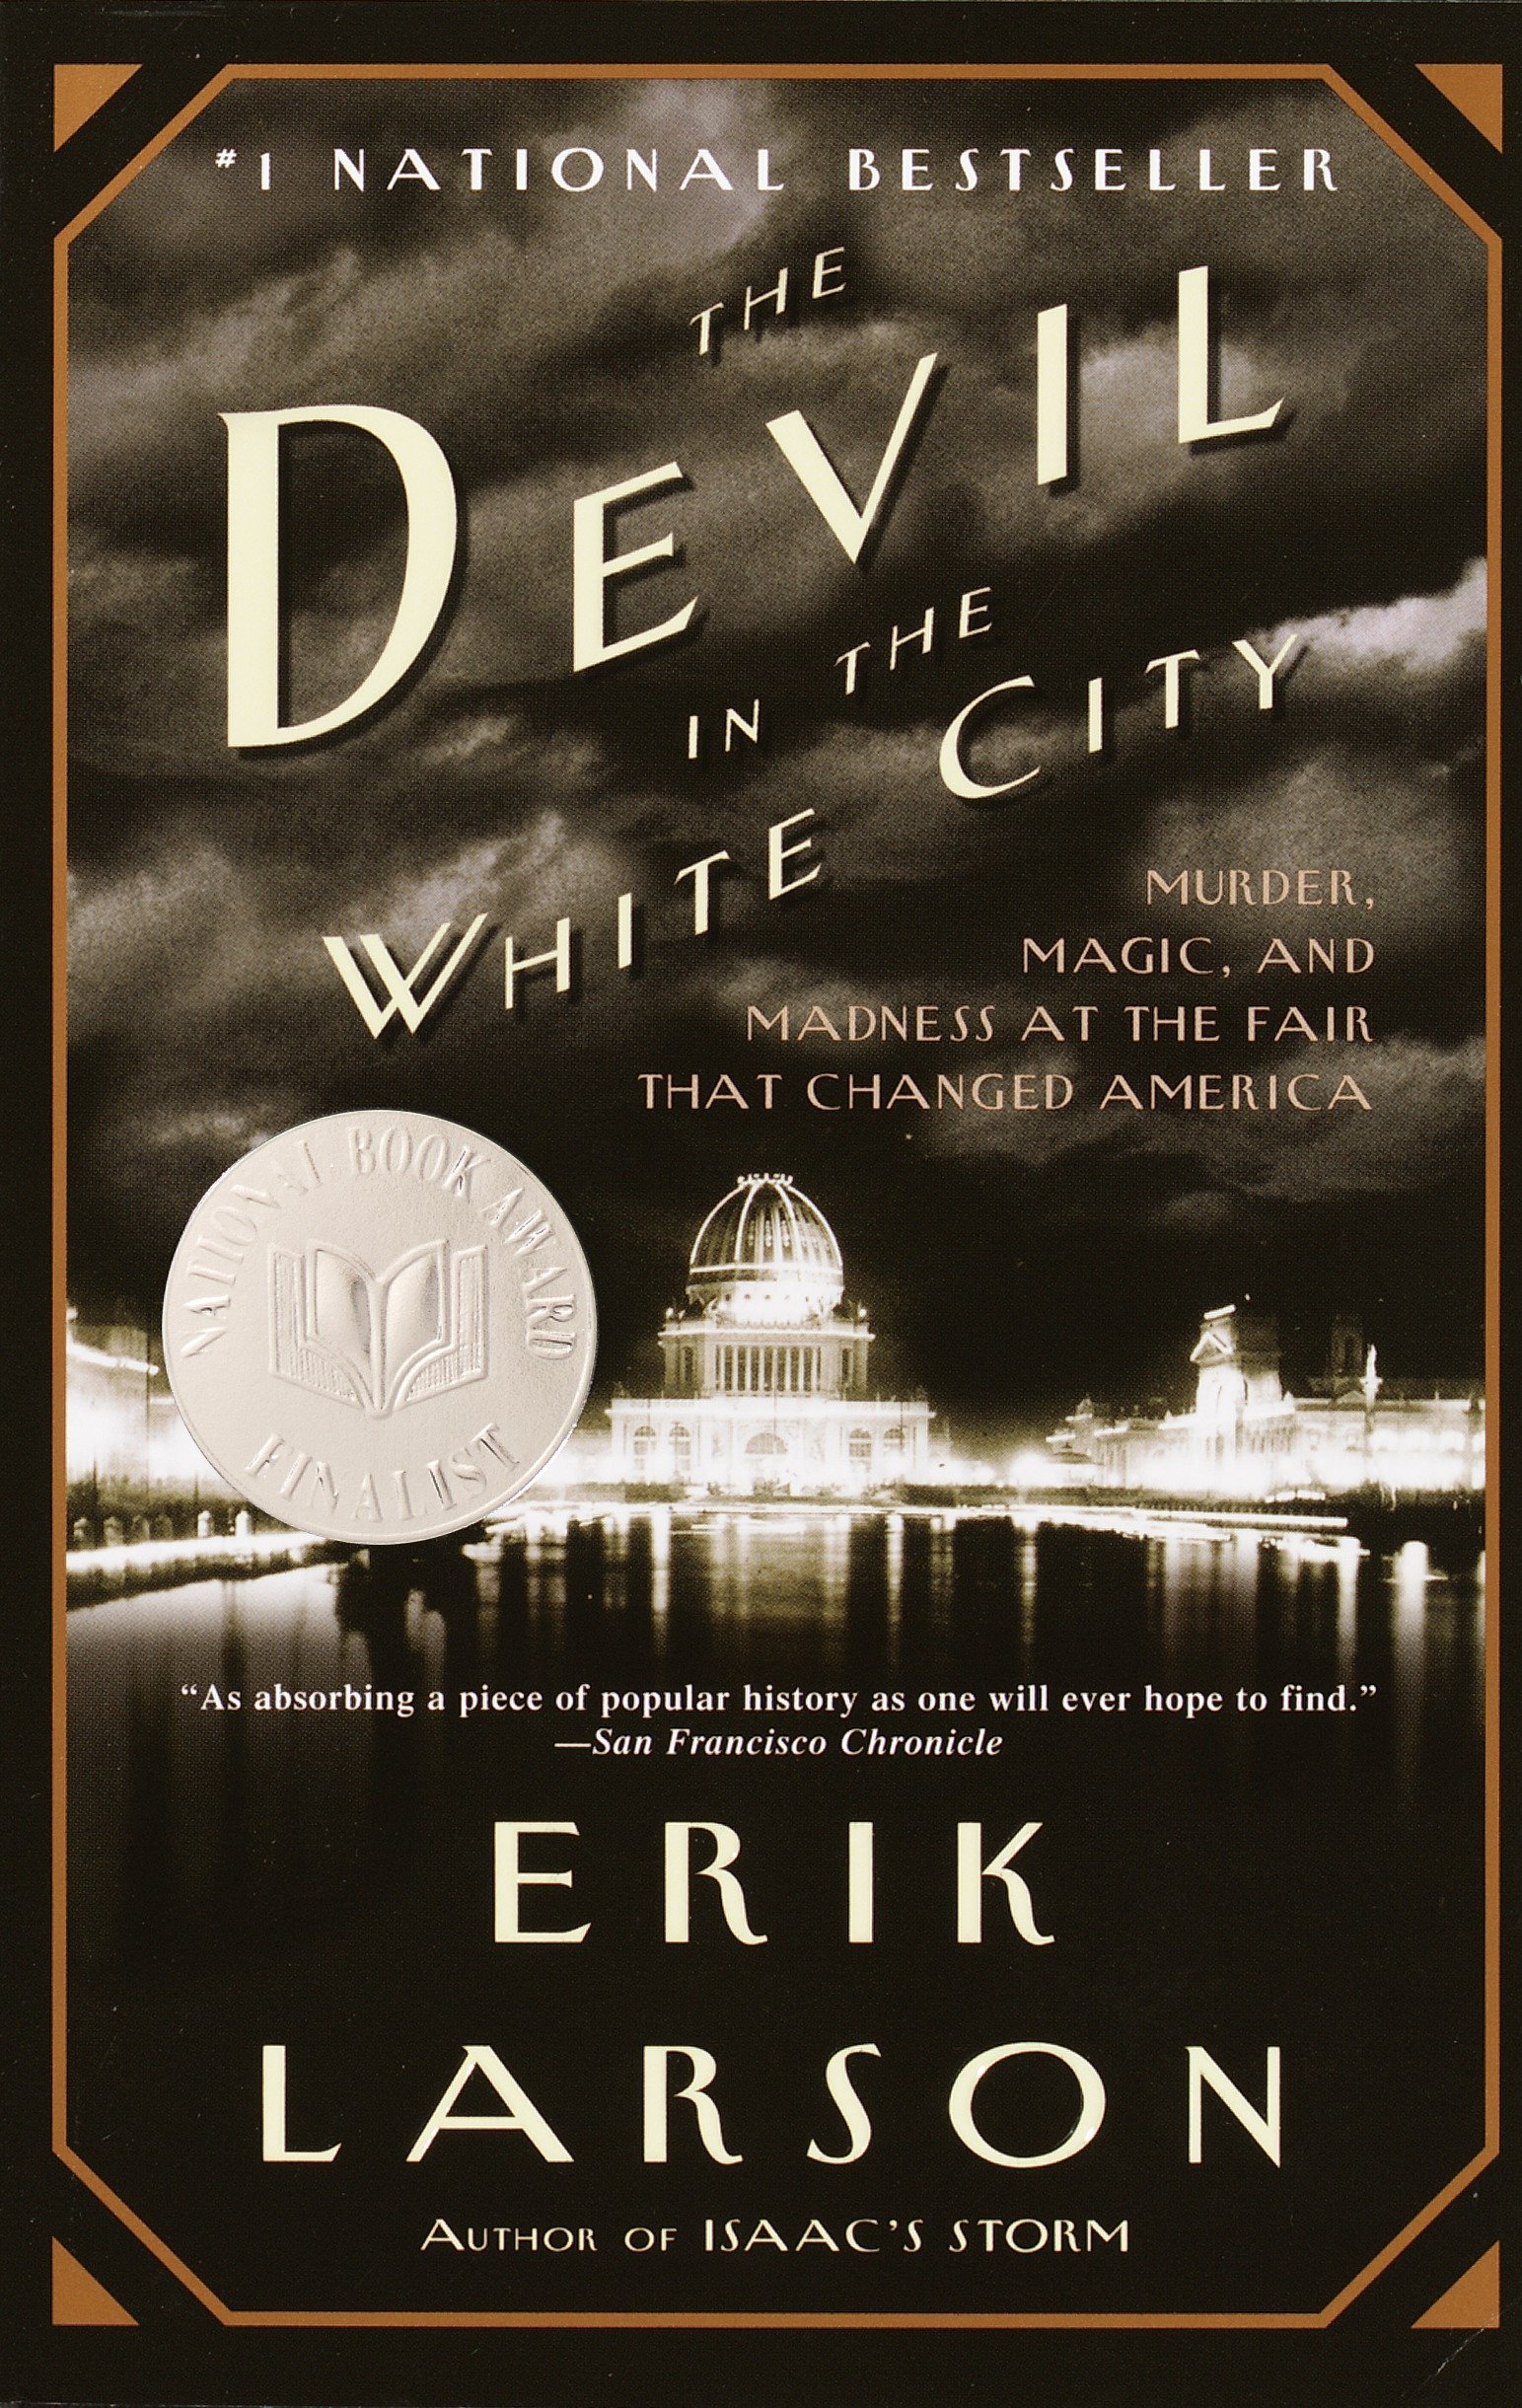 19) The Devil in the White City - Erik Larson's Non-fiction novel is one of the best displays of how effective and engaging the genre can be. Based on real characters and events, Larson tells a magnificent true story set in 1893 that shifts back and forth between Daniel H. Burnham, the architect behind the Chicago World's Fair, and Dr. Henry Howard Holmes, a serial killer who used his elaborate and convoluted mansion to murder his victims. The Devil in the White City plays with the comparison between the two men's fanatical goal of building something they consider to be perfect to great effect, and the deeper in the novel pulls, the more amazed you'll be that it isn't fiction.